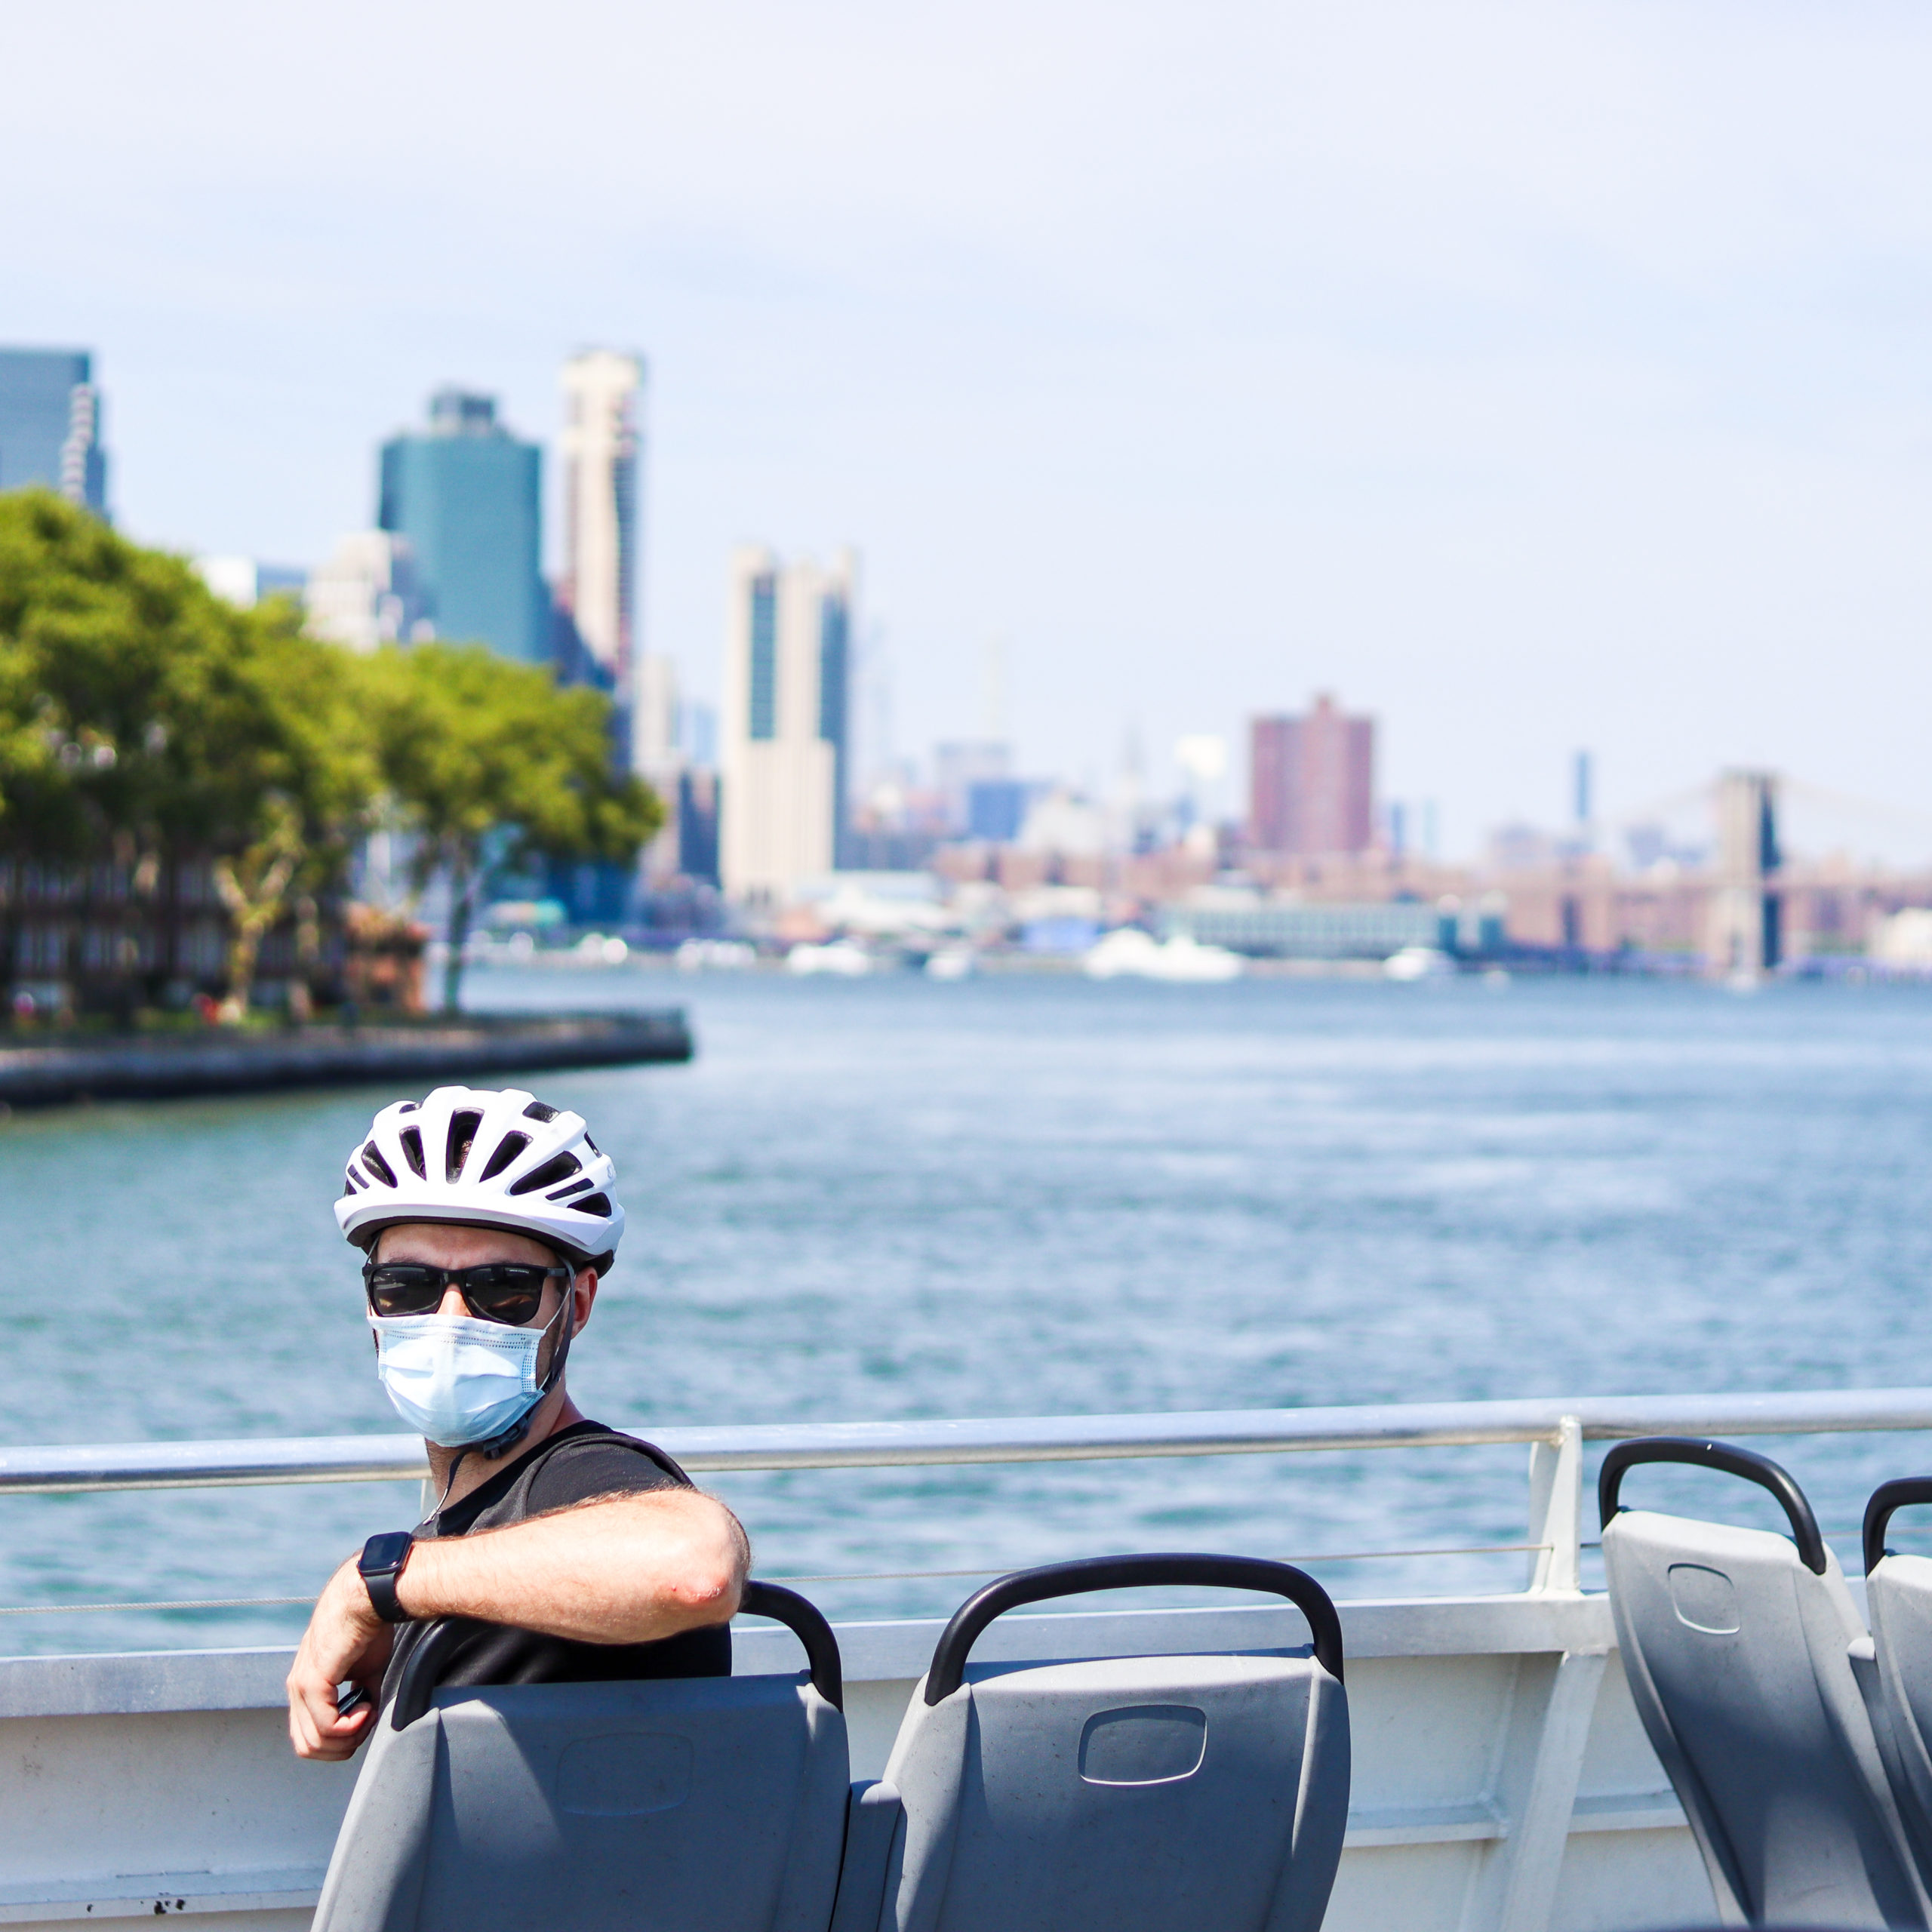 Man on Governors Island ferry